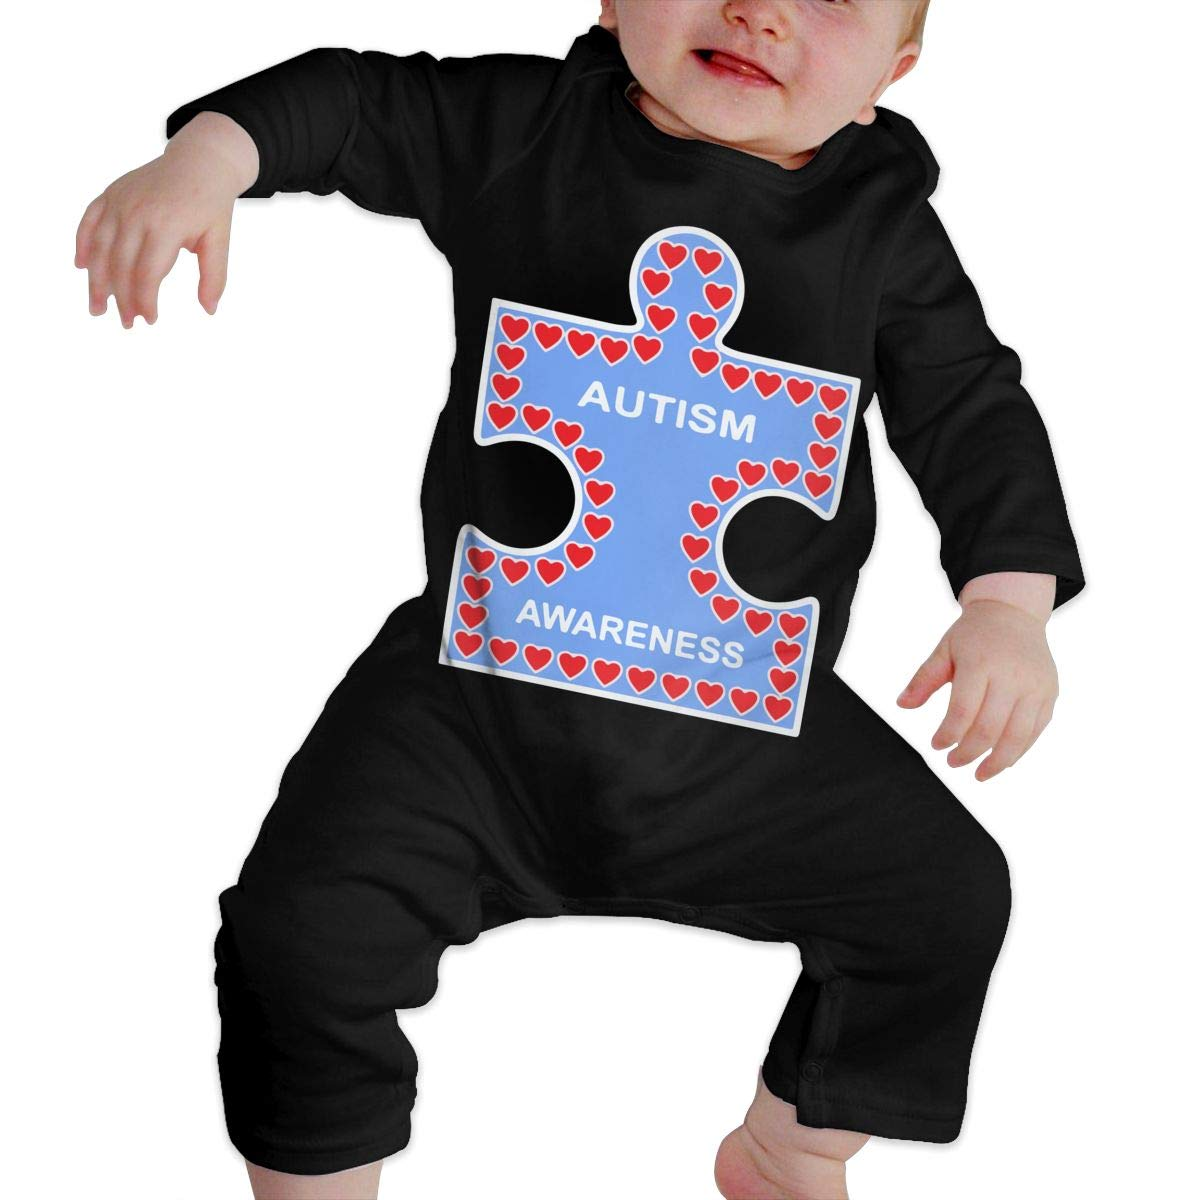 Warm Autism Awareness Cotton Romper Outfit Db84UR@5p Newborn Baby Girls Boys Long Sleeve Bodysuit